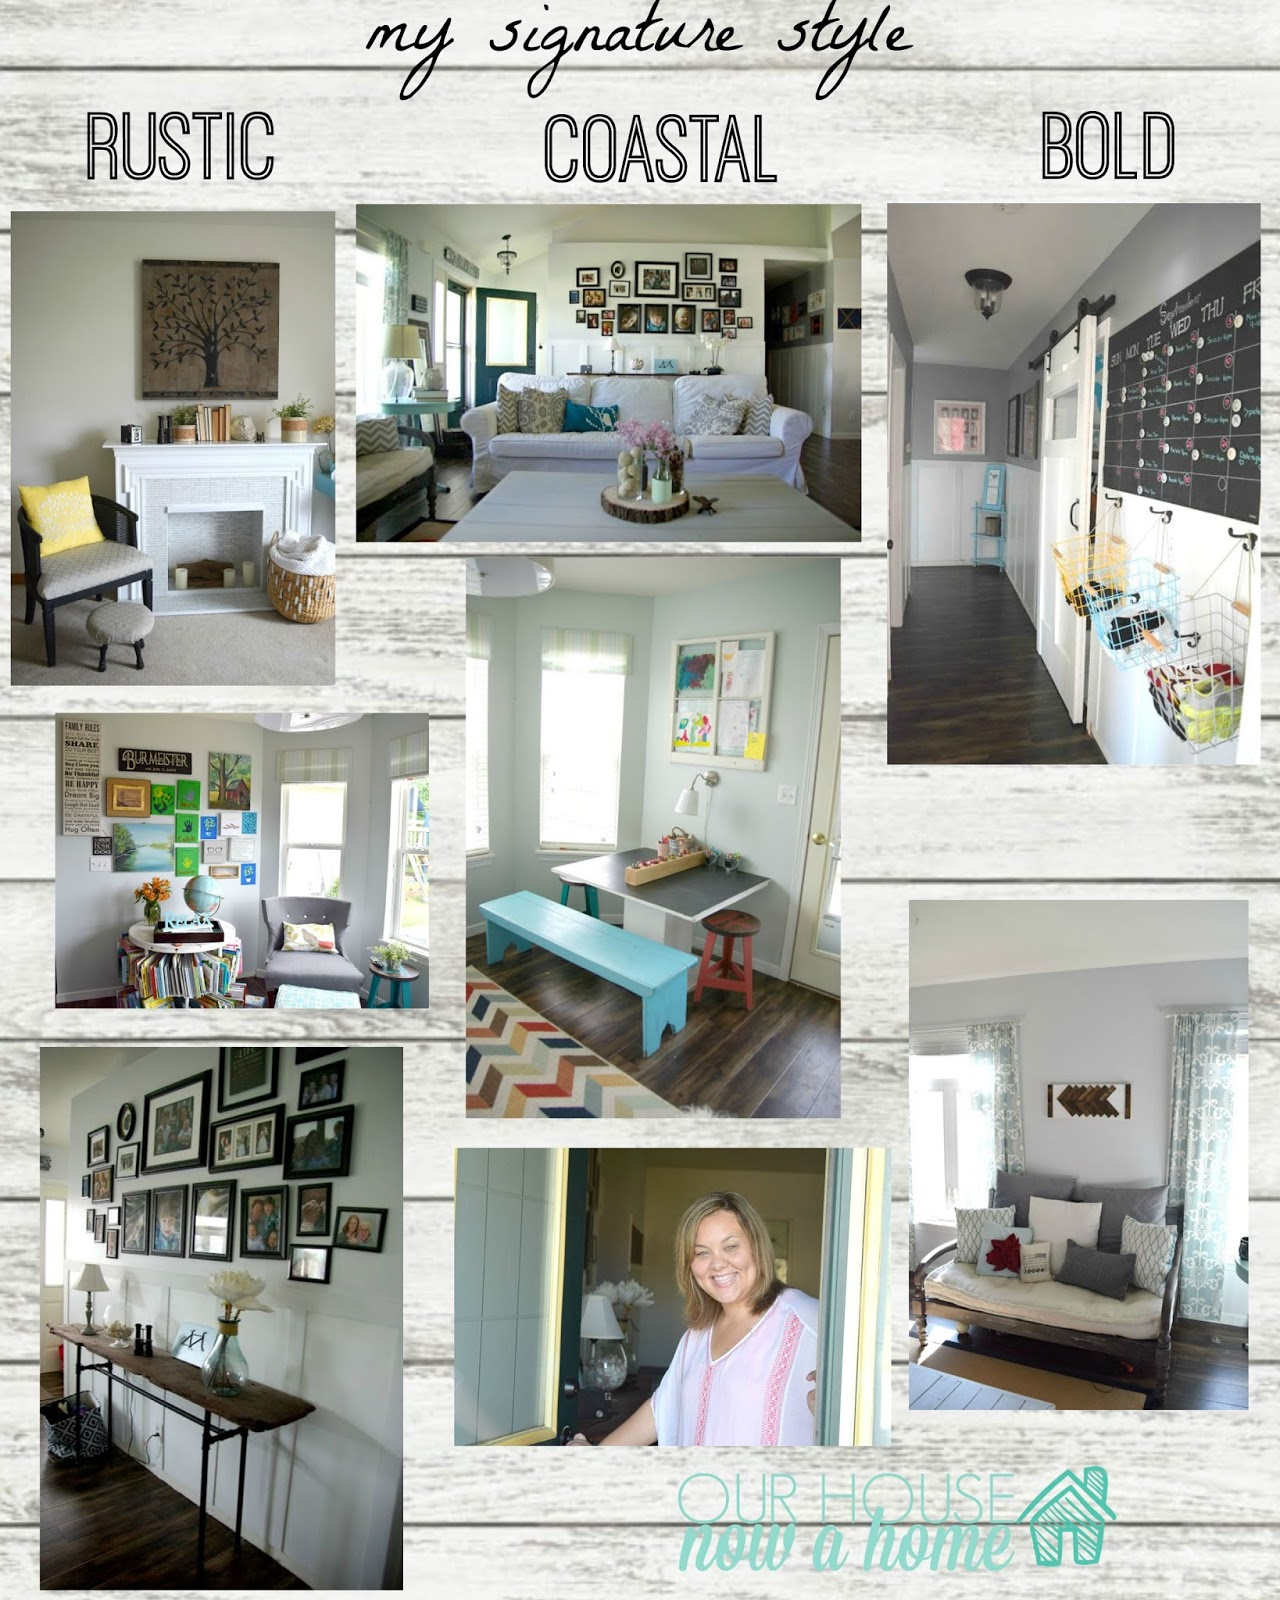 my home style blog hop - My Home Blog